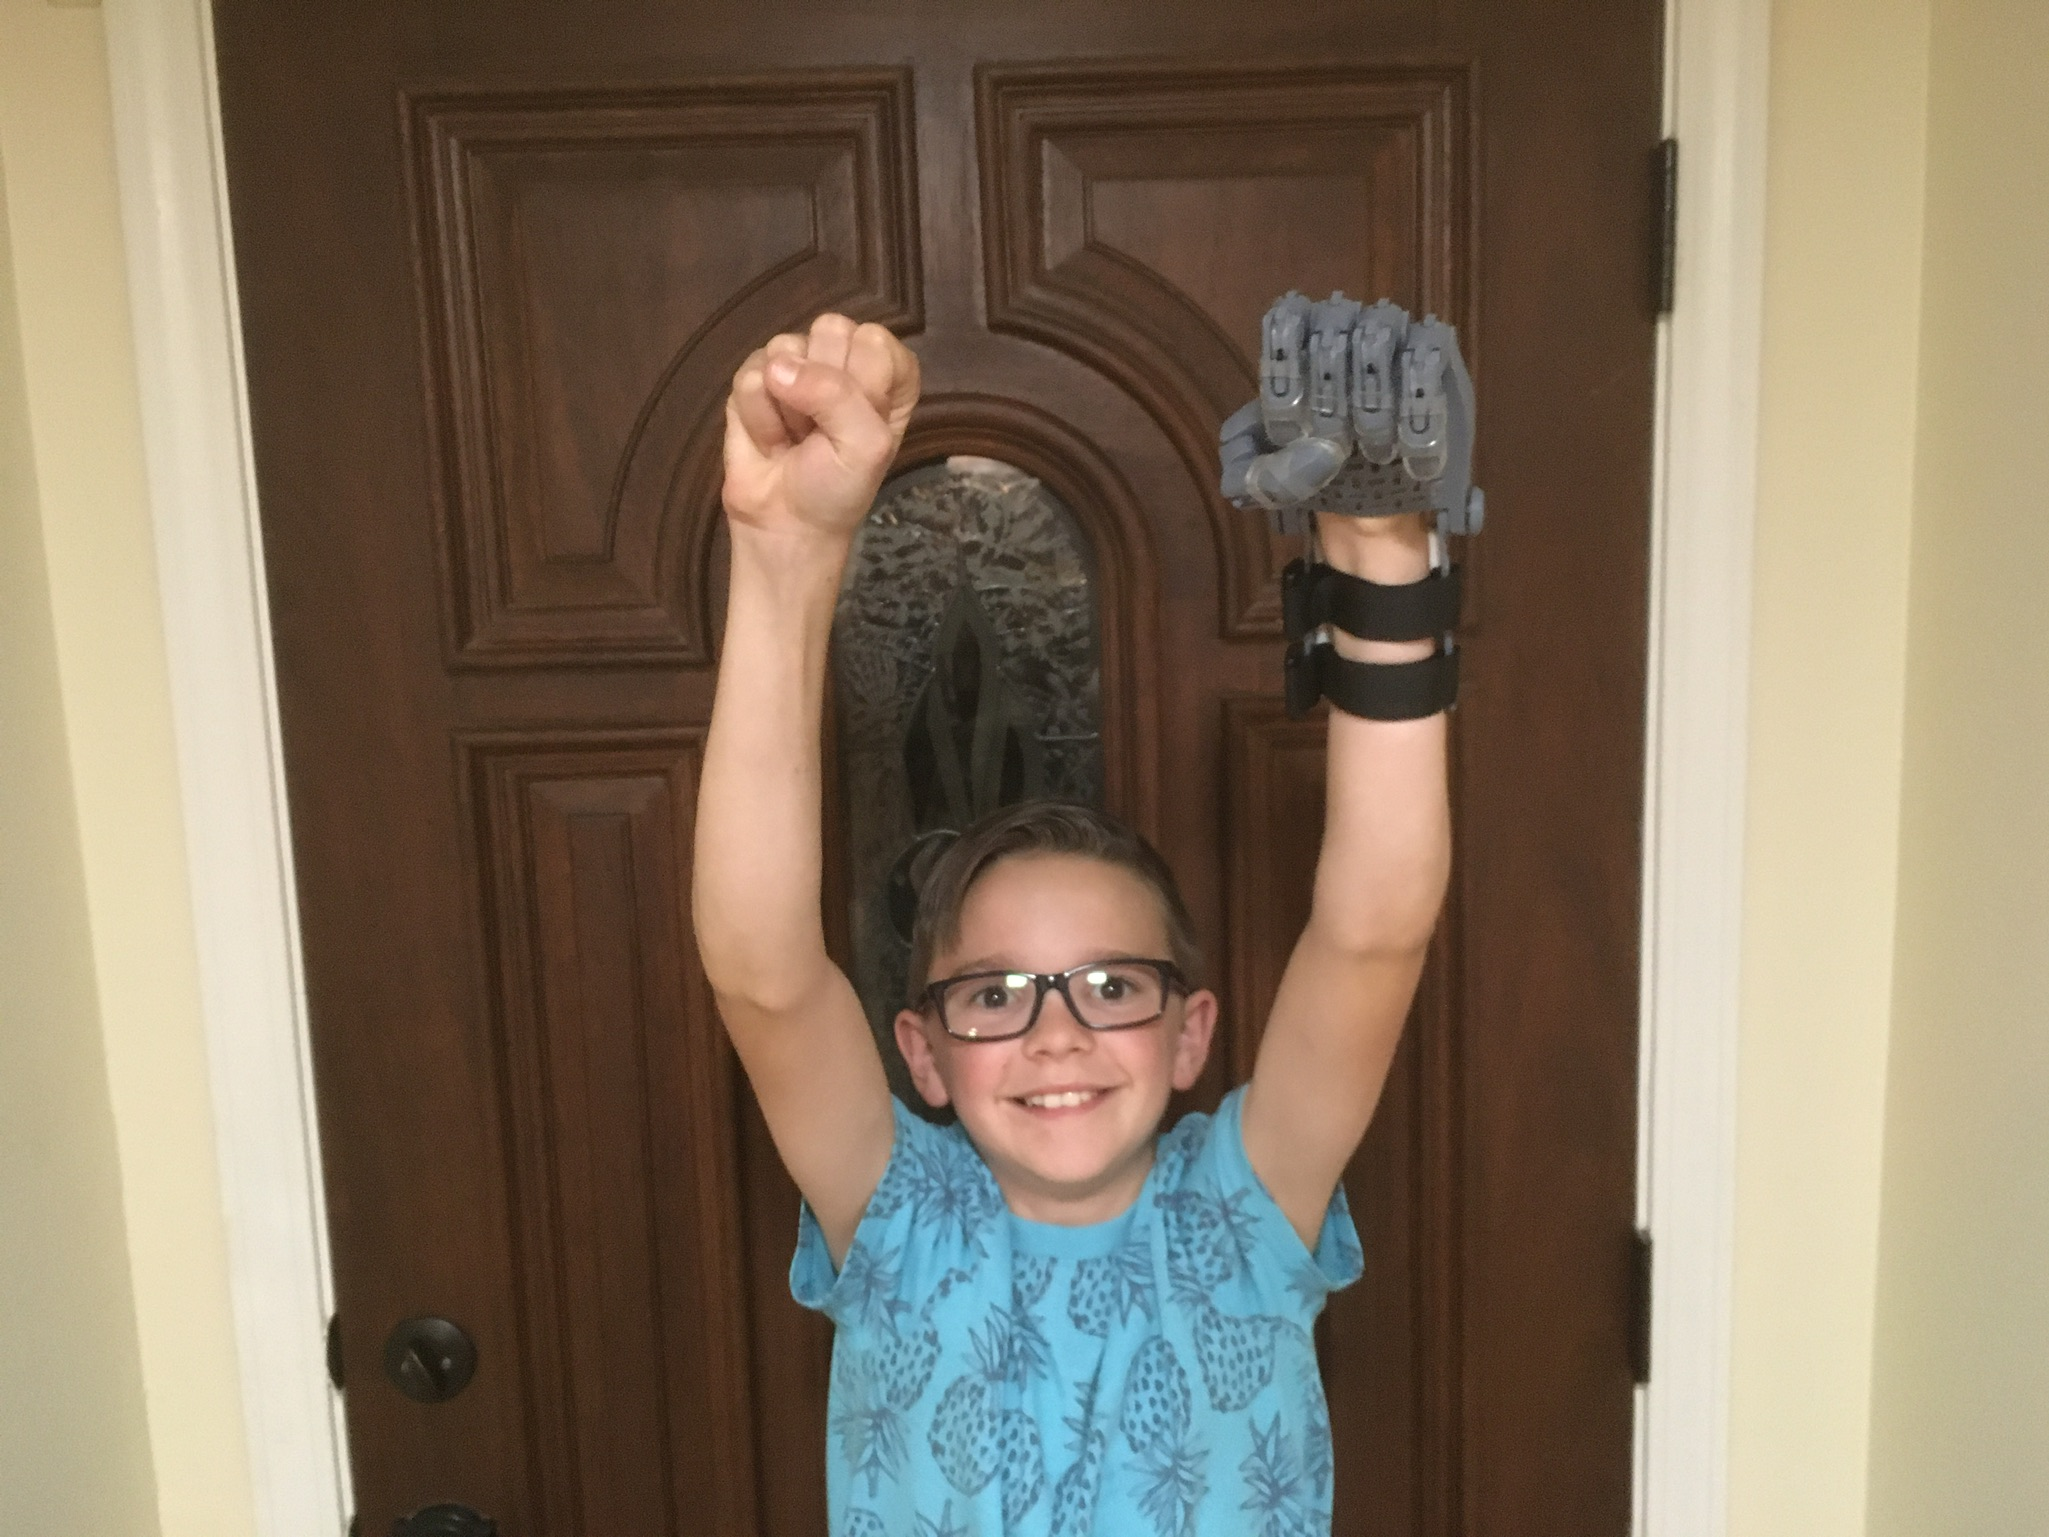 boy raises arms with artificial hand